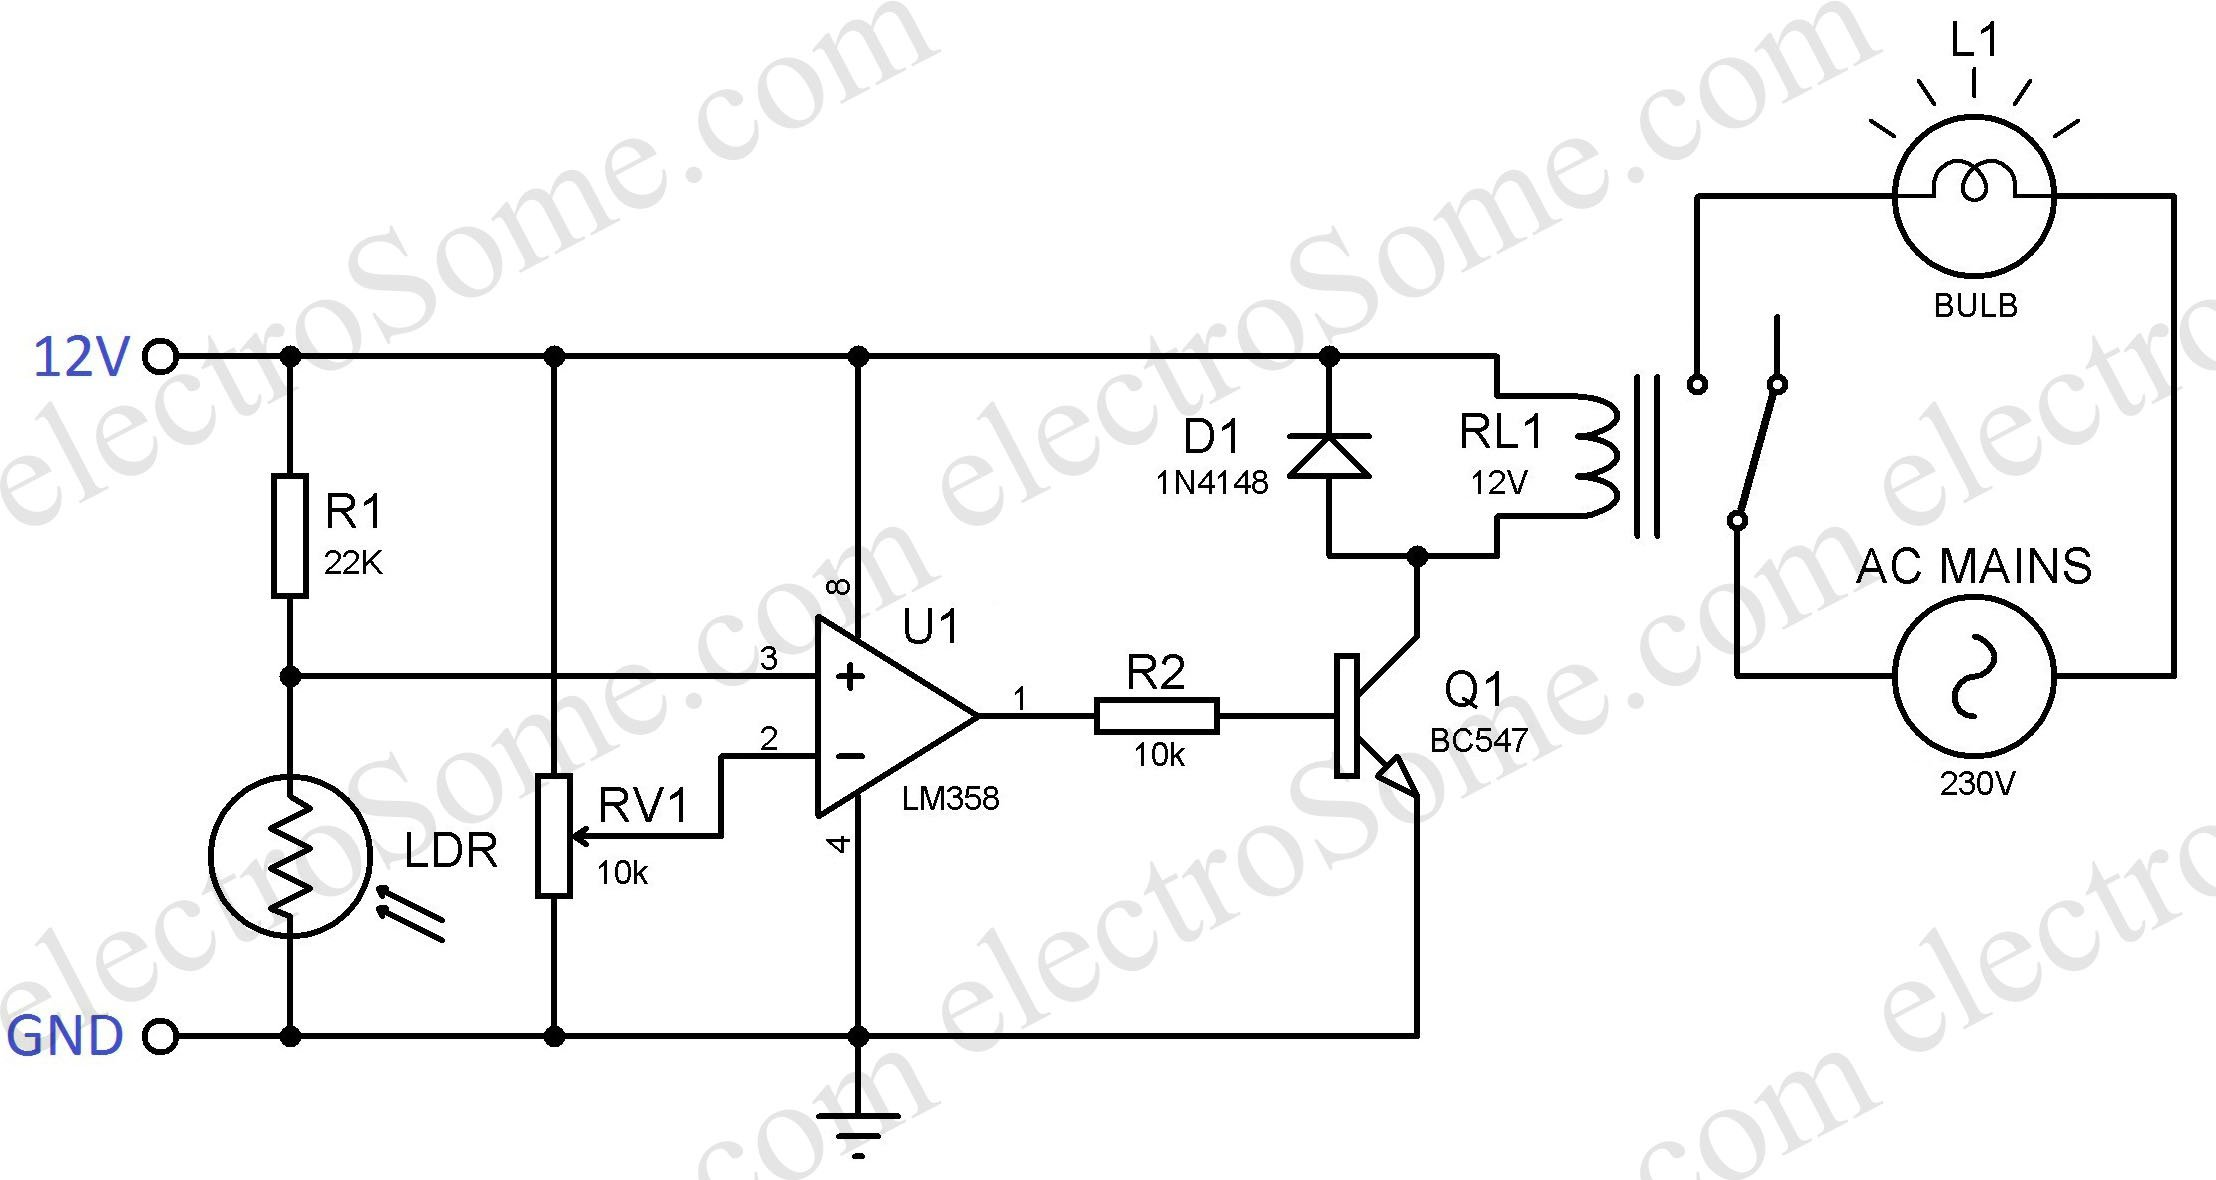 Automatic Light Circuit Diagram Manual Guide Wiring 2009 Mack Diagrams Blower Night Lamp Using Ldr Rh Electrosome Com Sensor Street